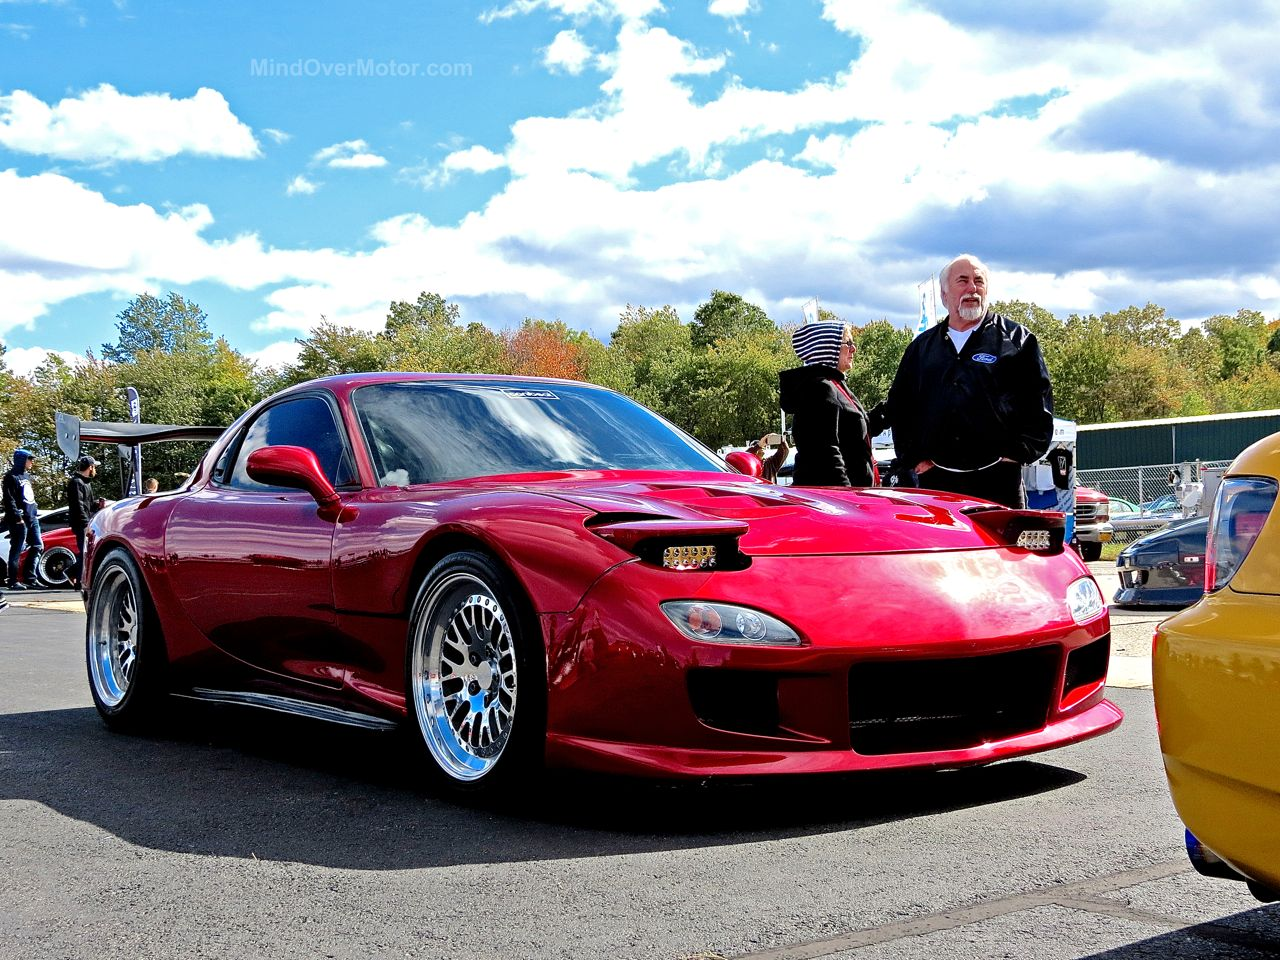 Mazda FD RX7 Red First Class Fitment